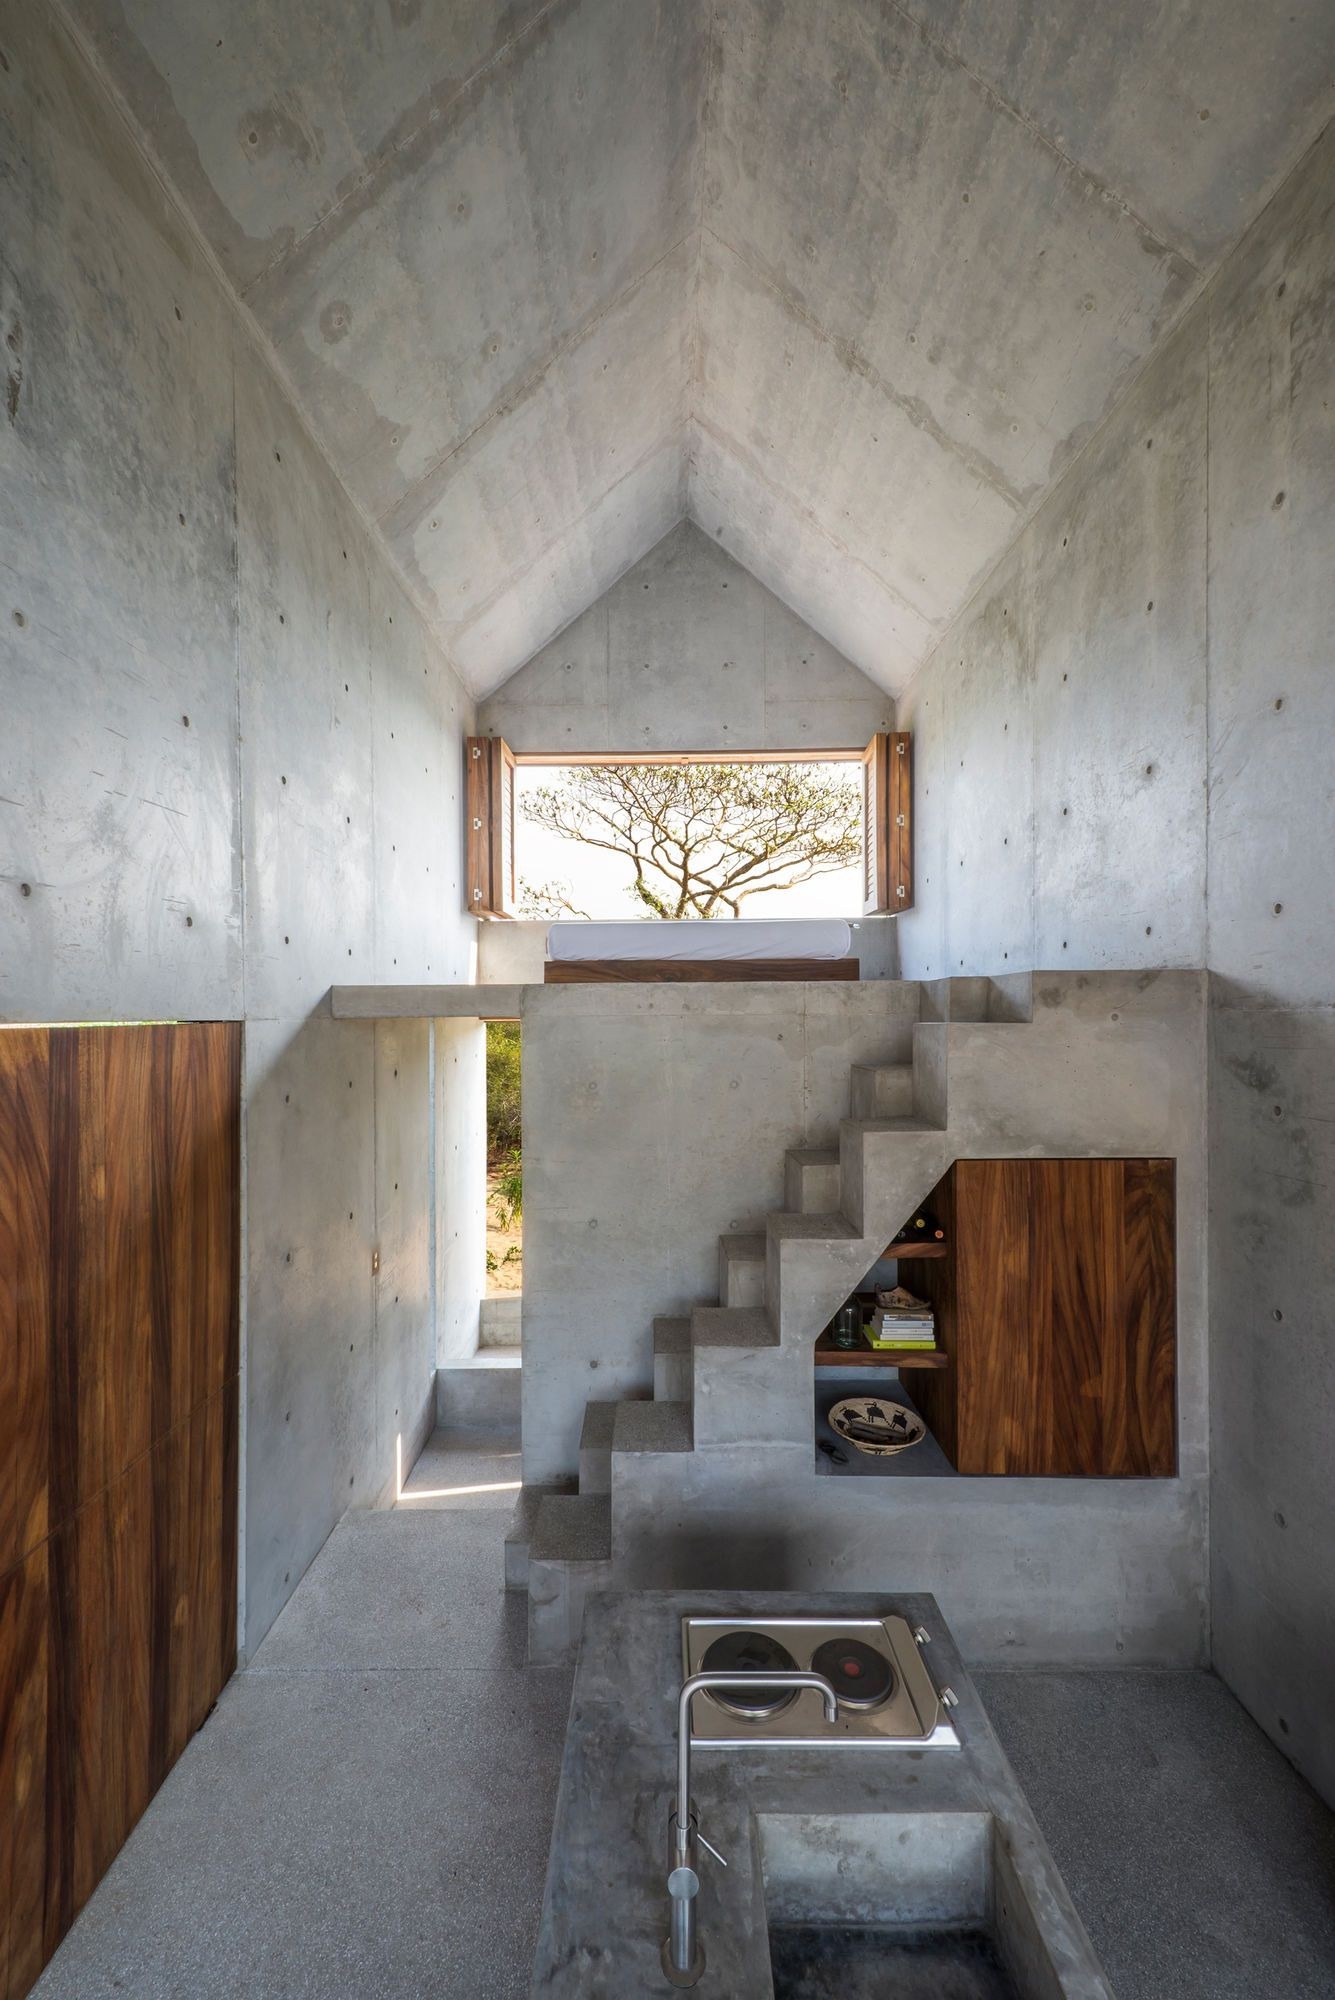 Affordable Concrete House Plans Elegant Casa Tiny Rustic Affordable Escape with Pool Airbnb Beach